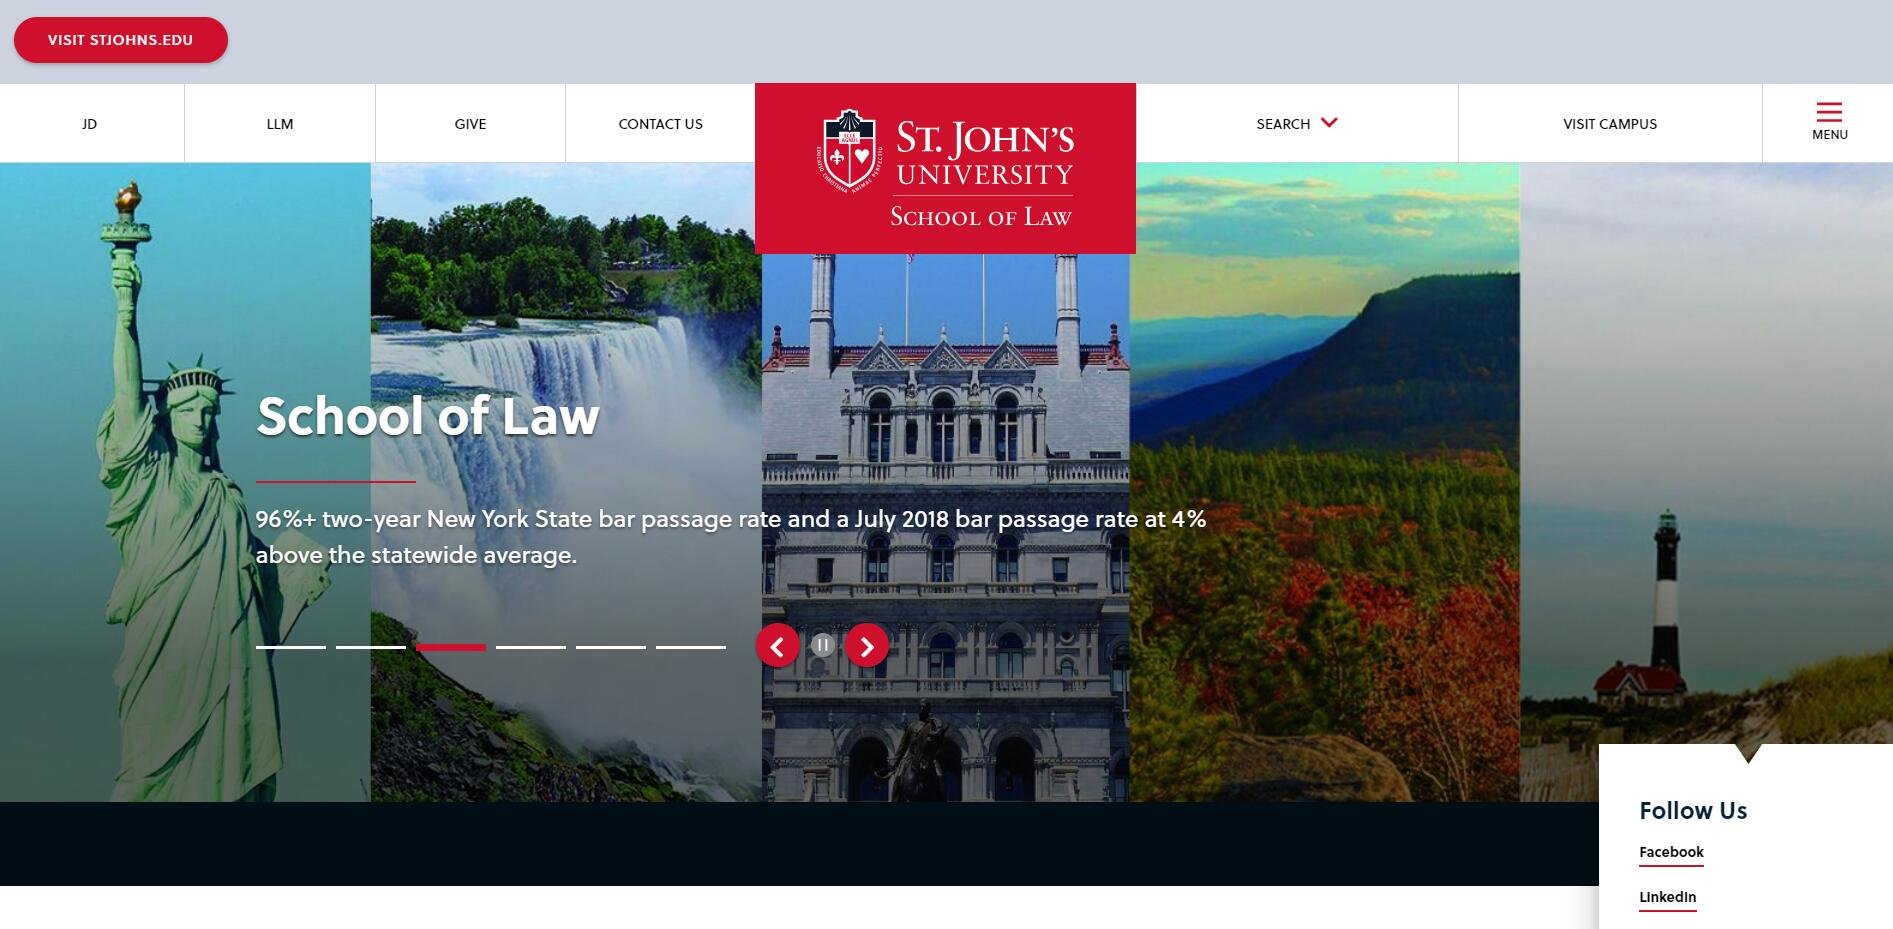 The School of Law at St. John's University (NY)